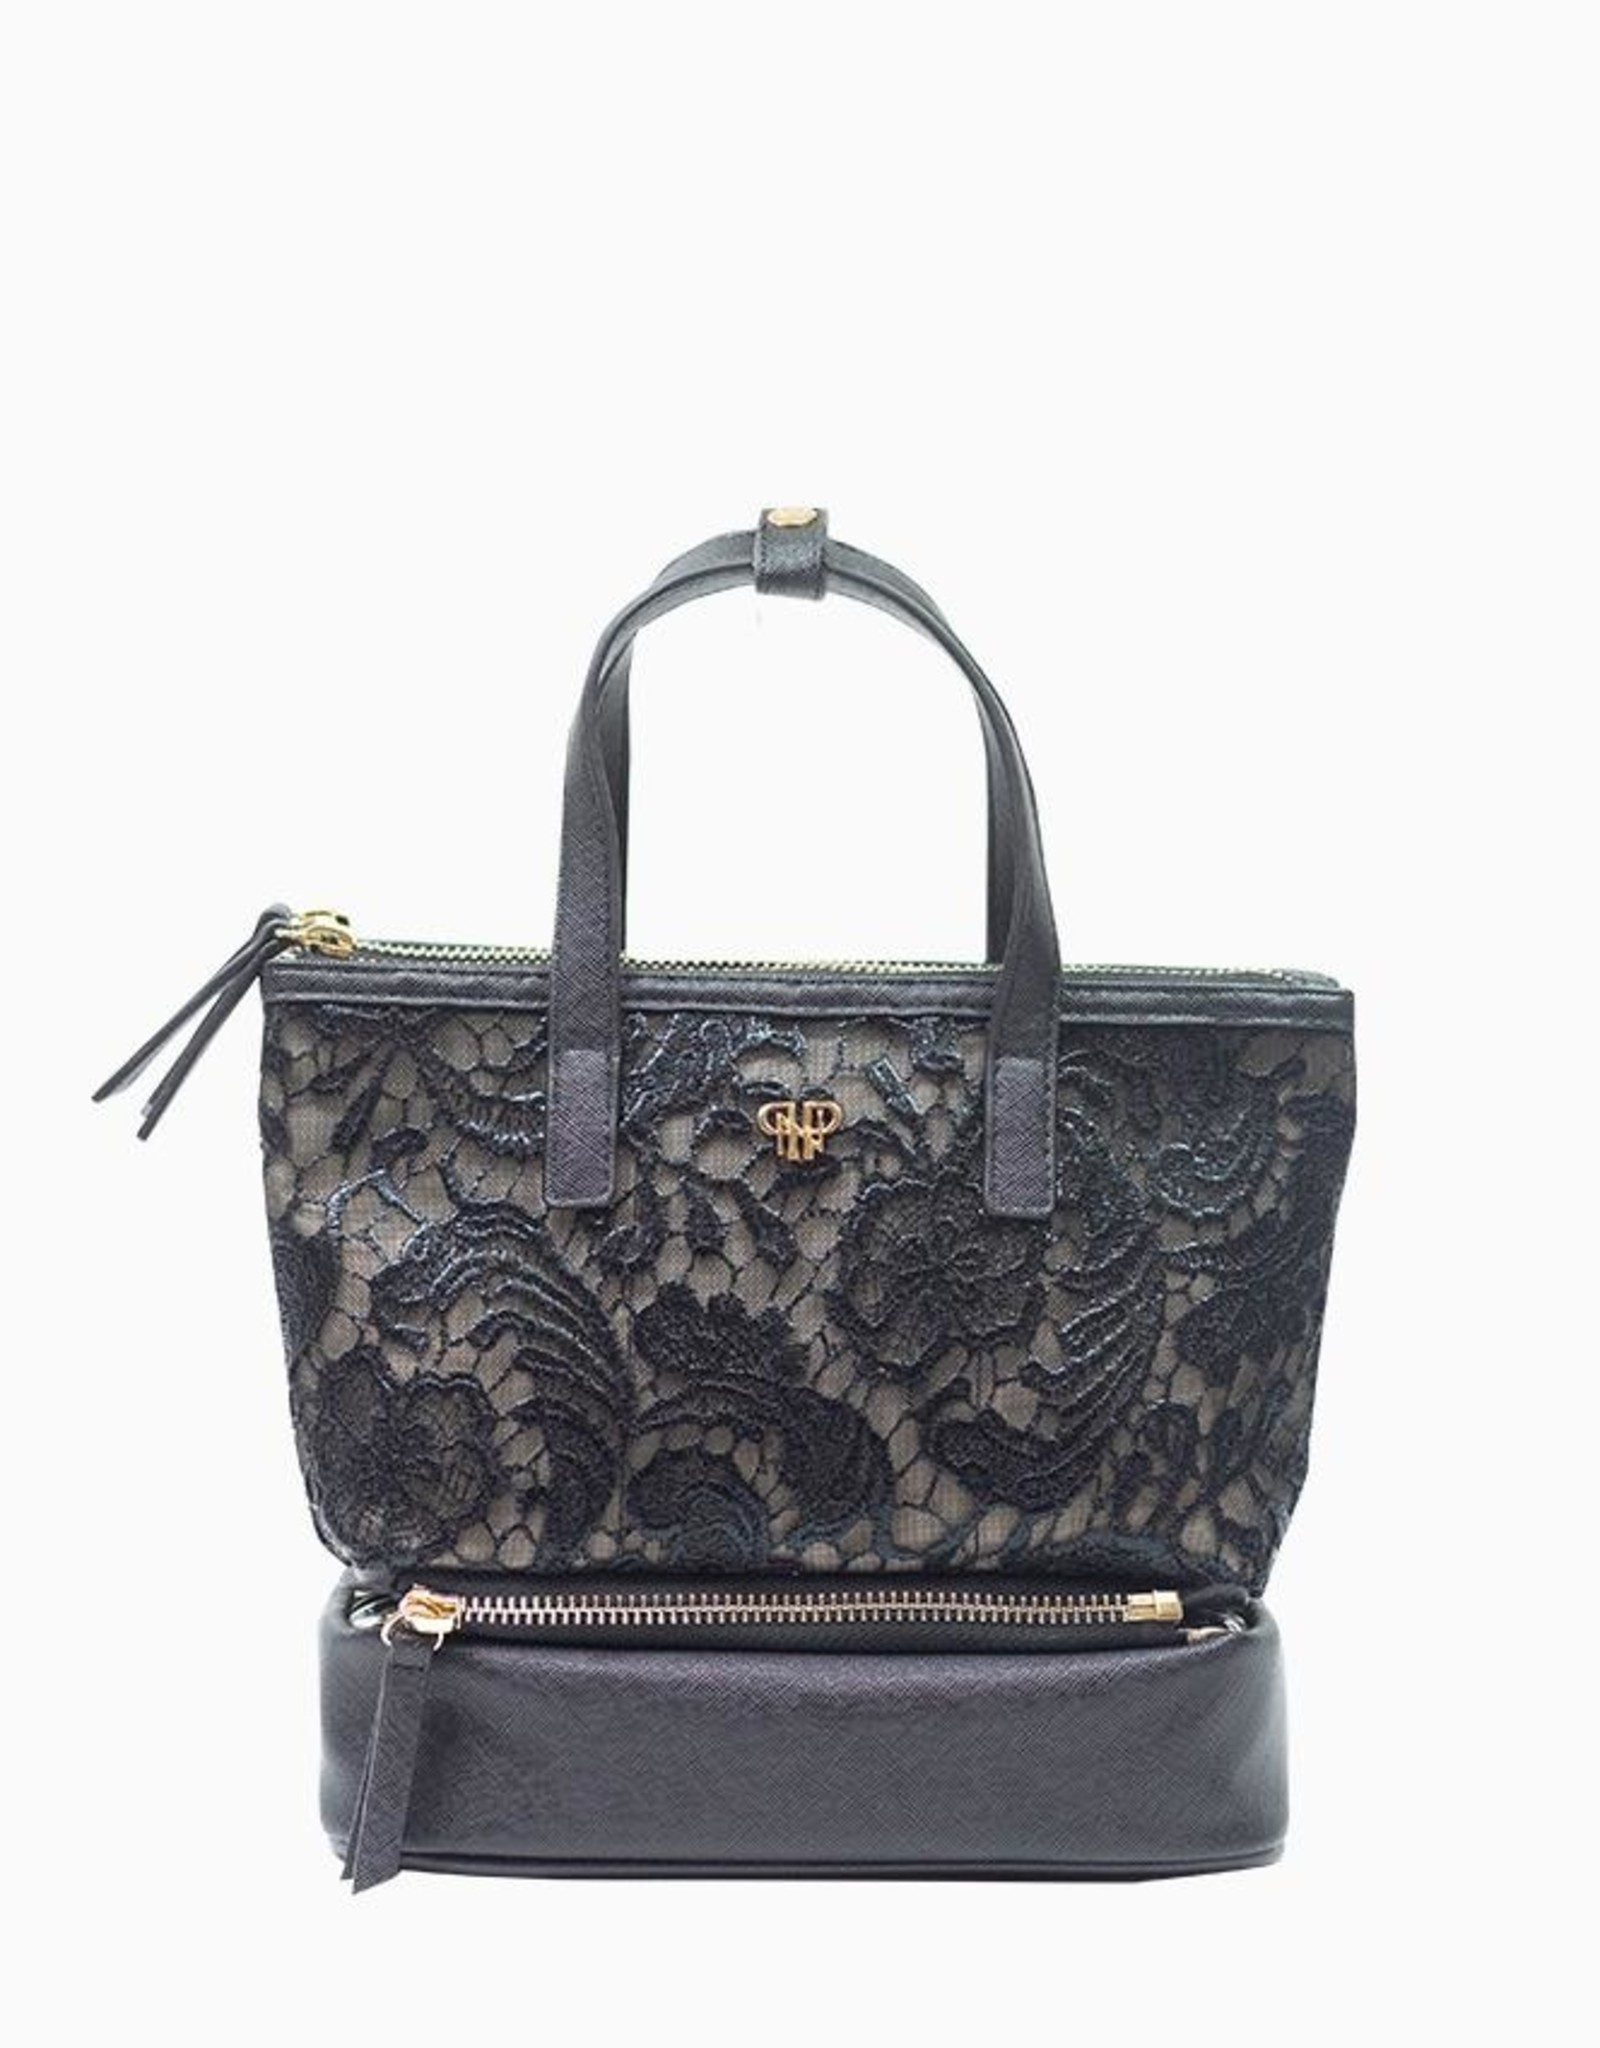 purseN Adira Makeup Case - Black Lace